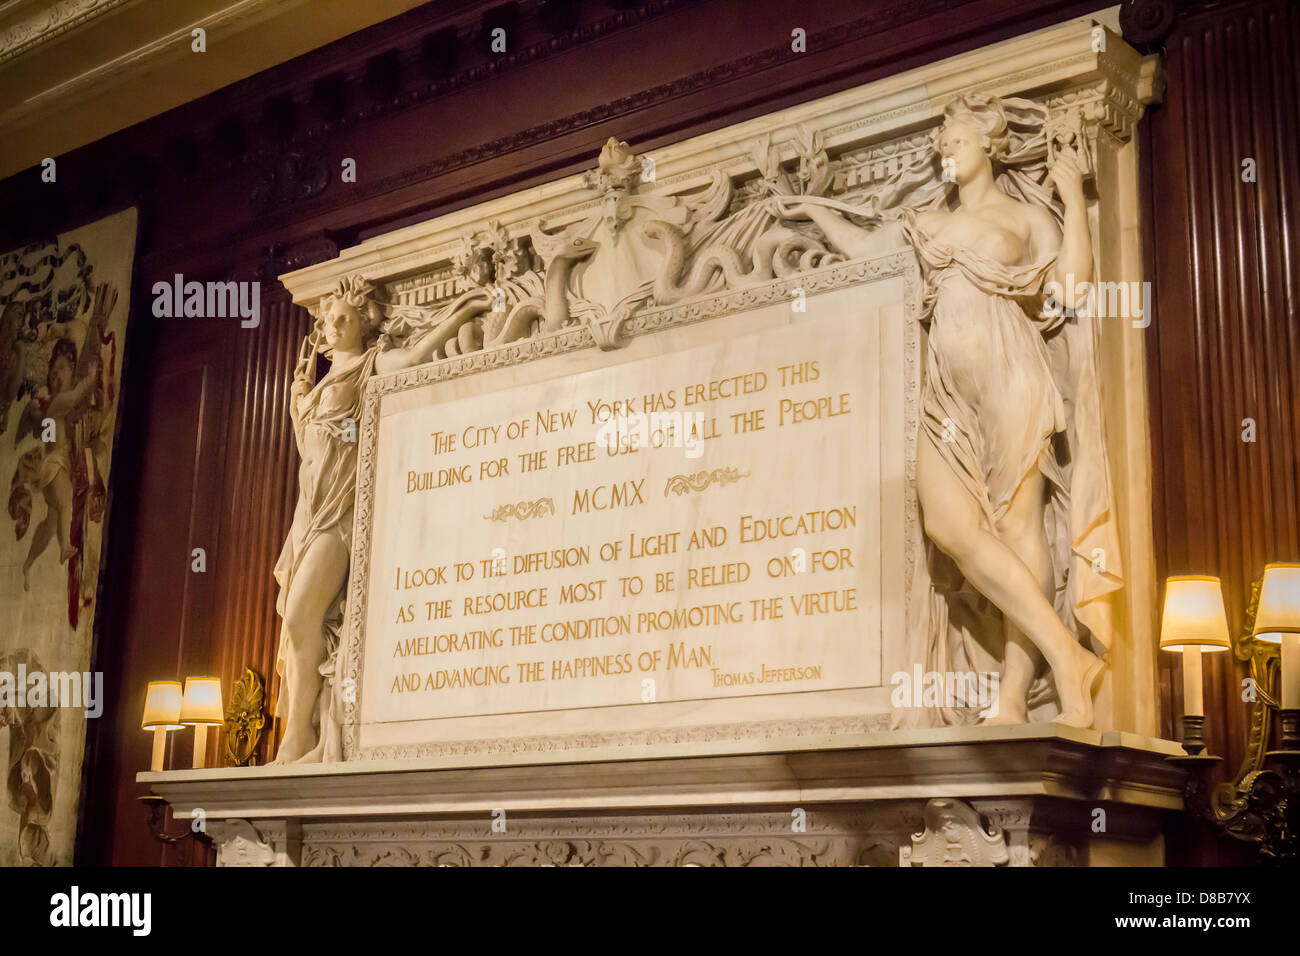 A quote from Thomas Jefferson adorns the mantelpiece of a ...